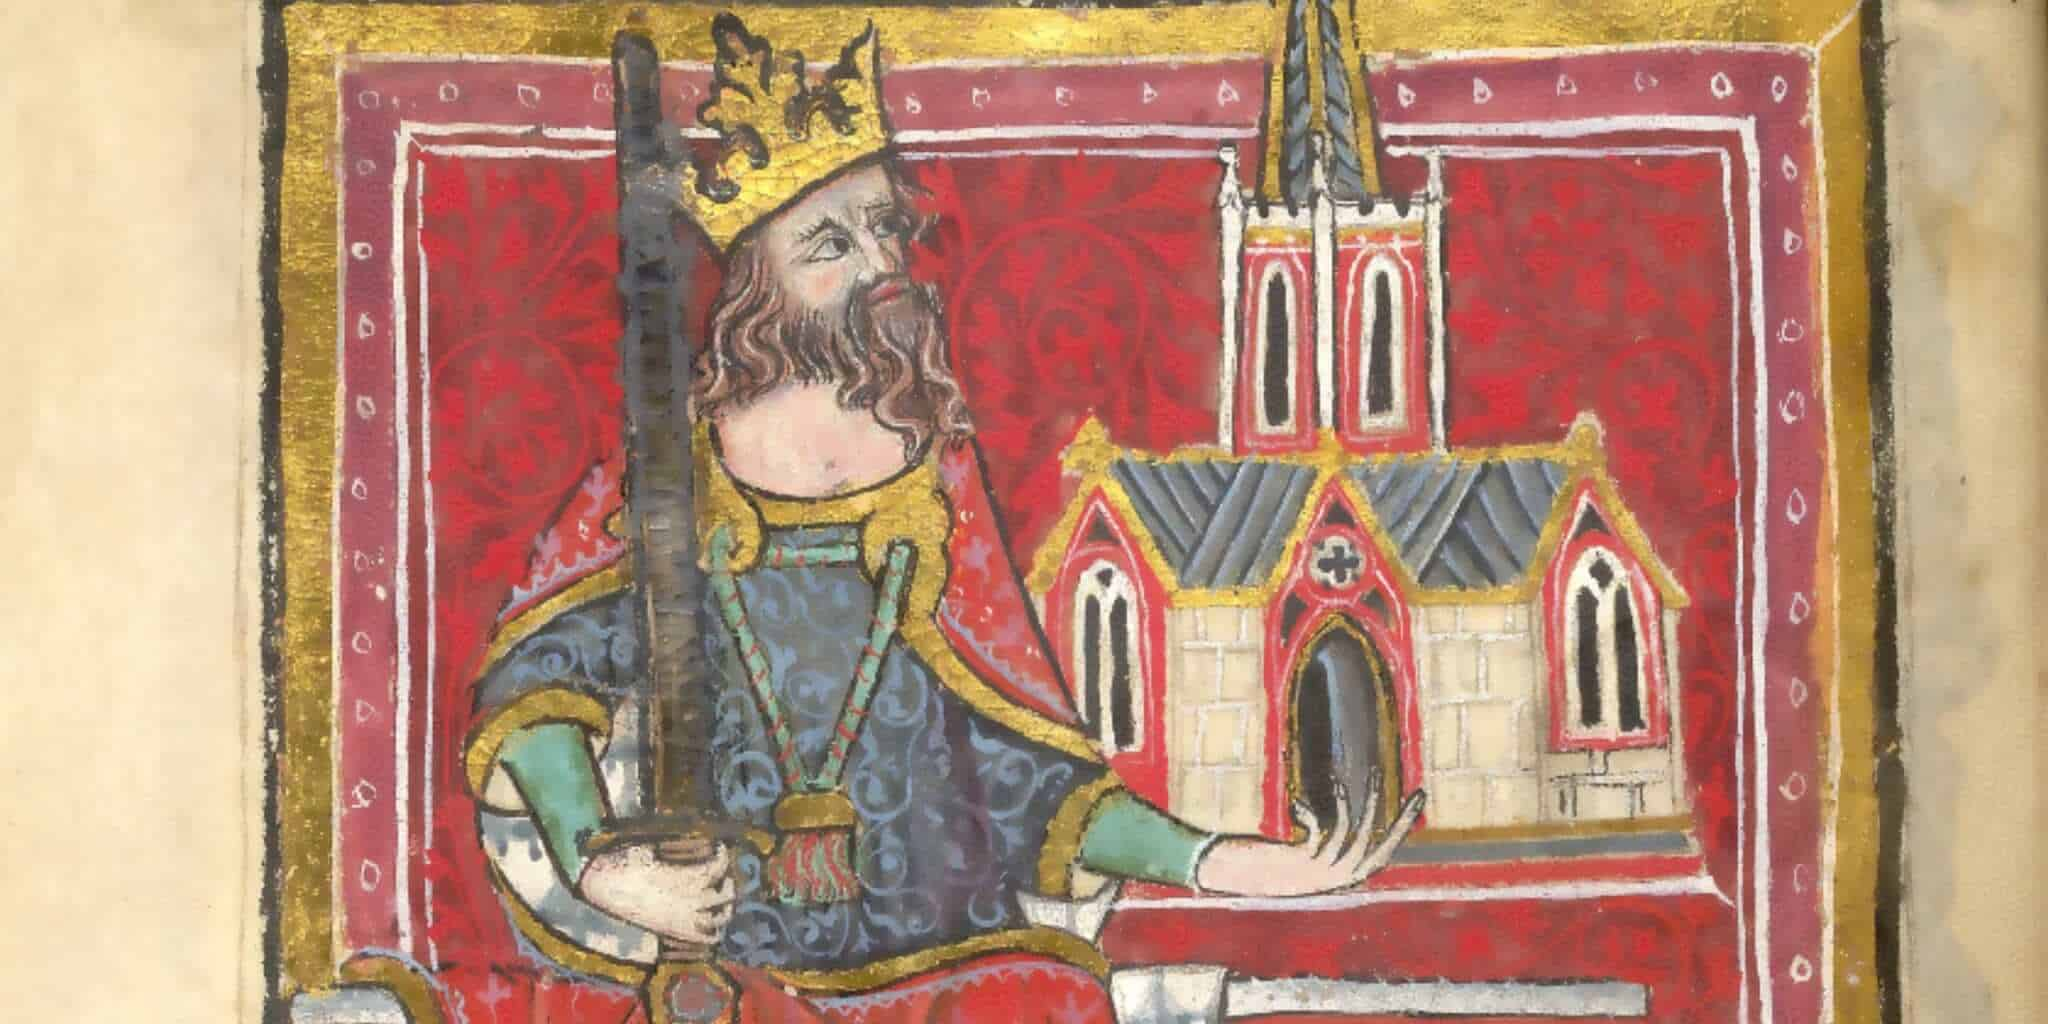 King Offa of Mercia and Offas Dyke